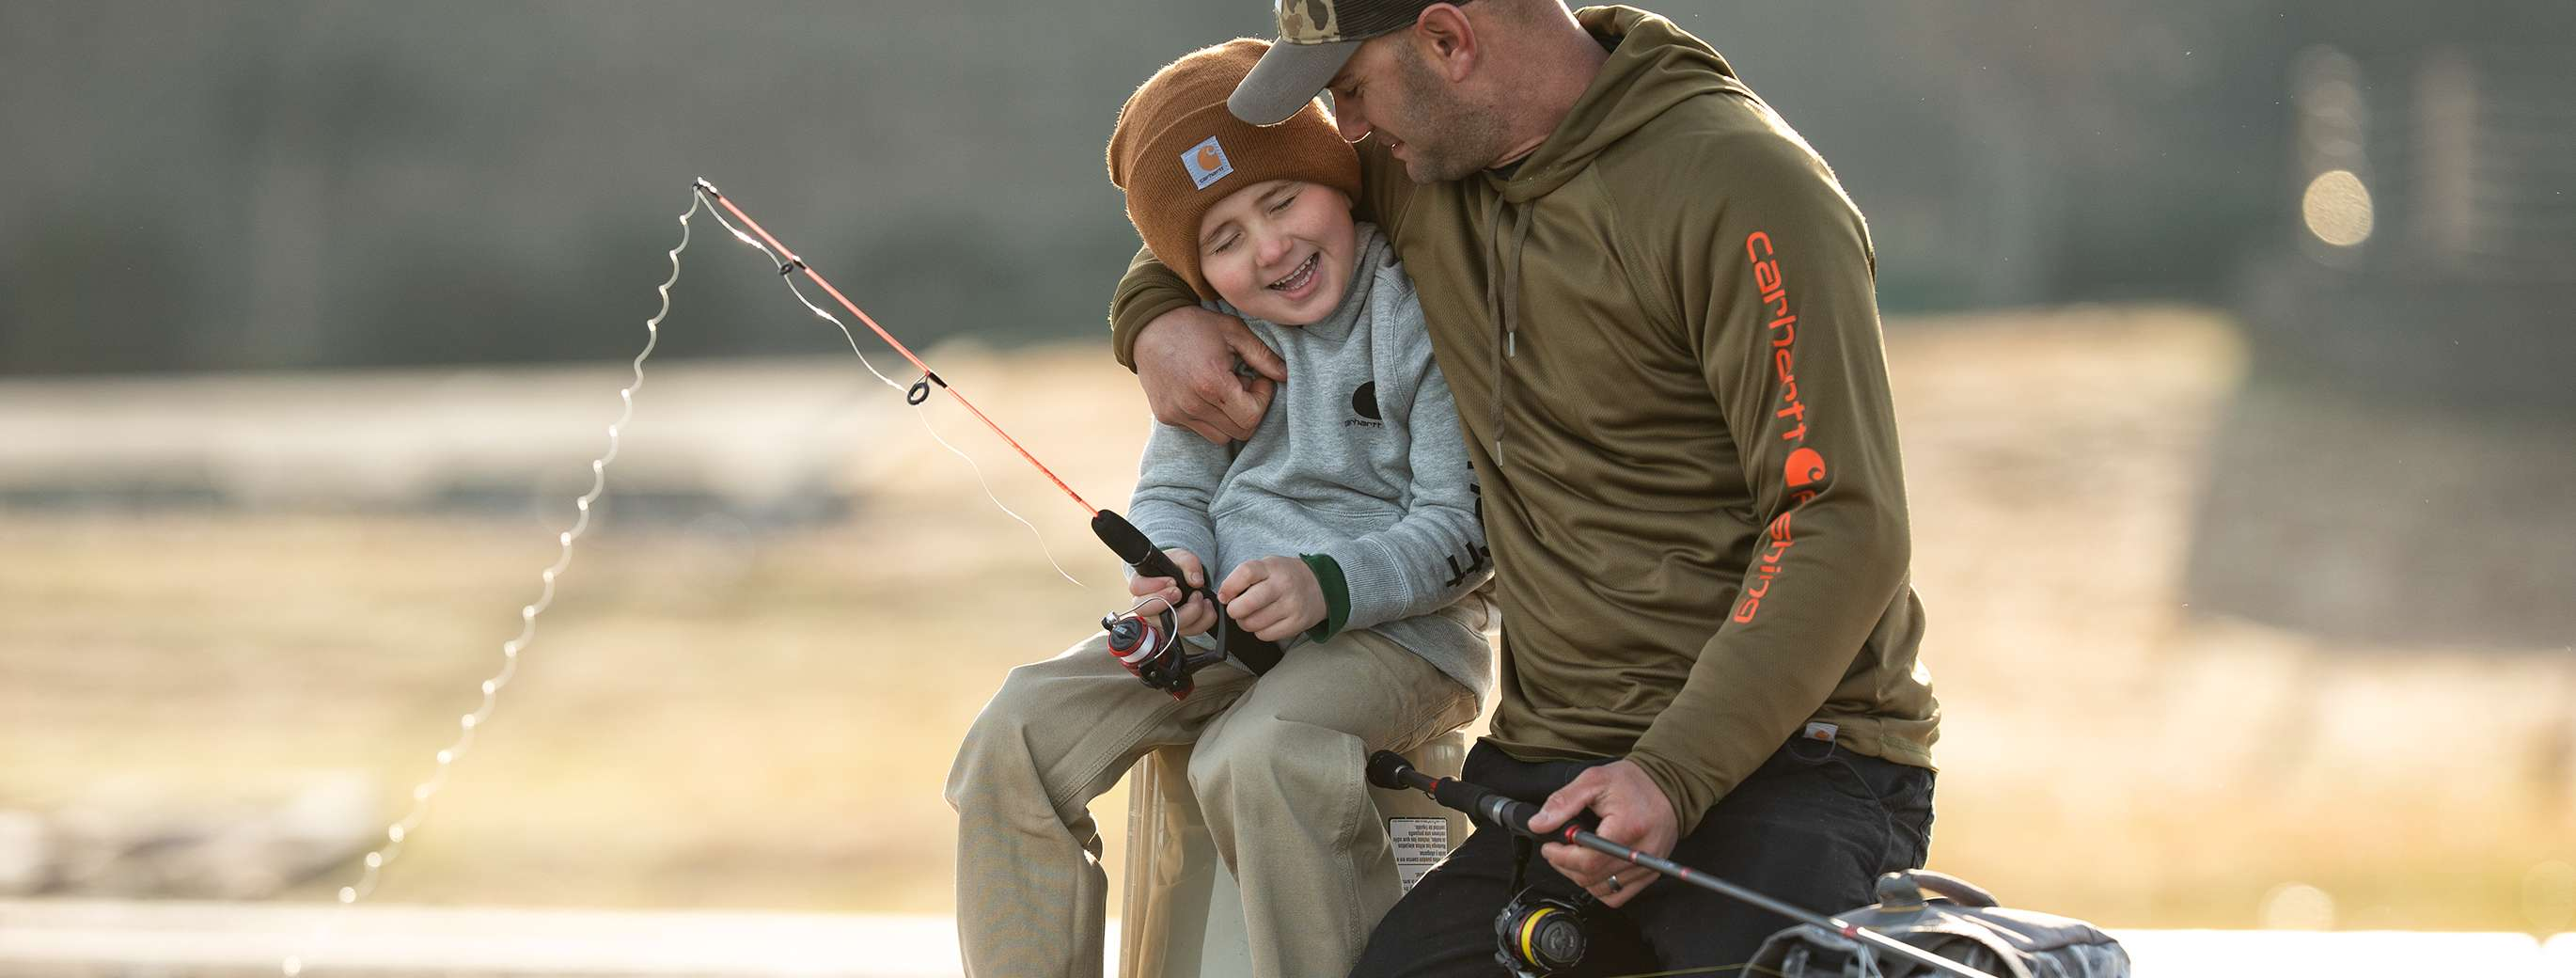 Best Time of Day to Fish for Bass, Trout, and More | Carhartt